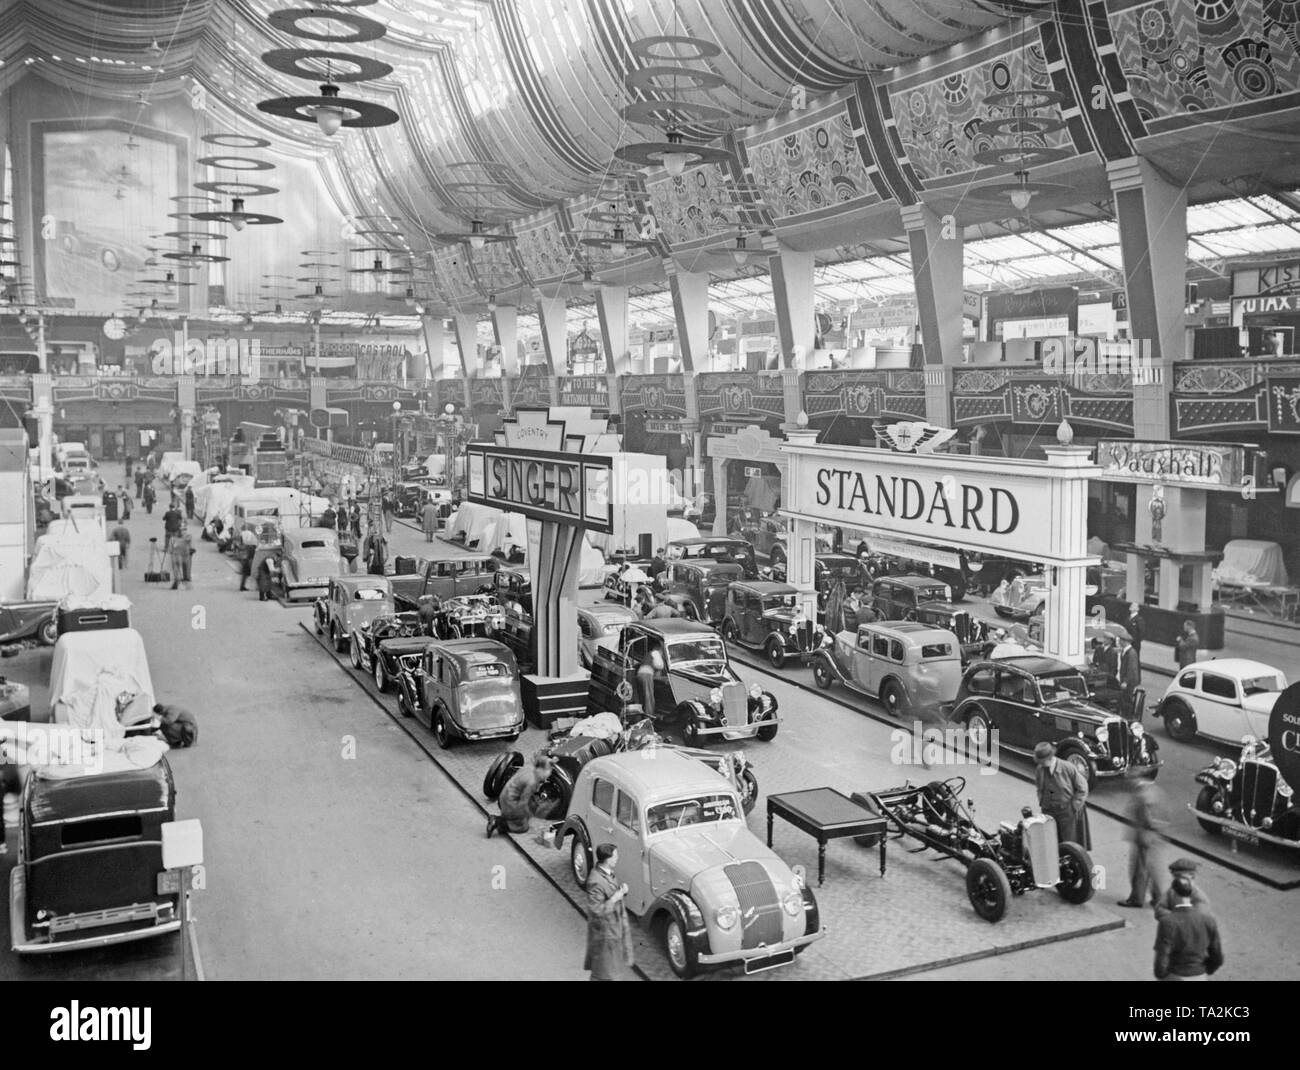 Overview of an exhibition hall of the British International Motor Show. - Stock Image